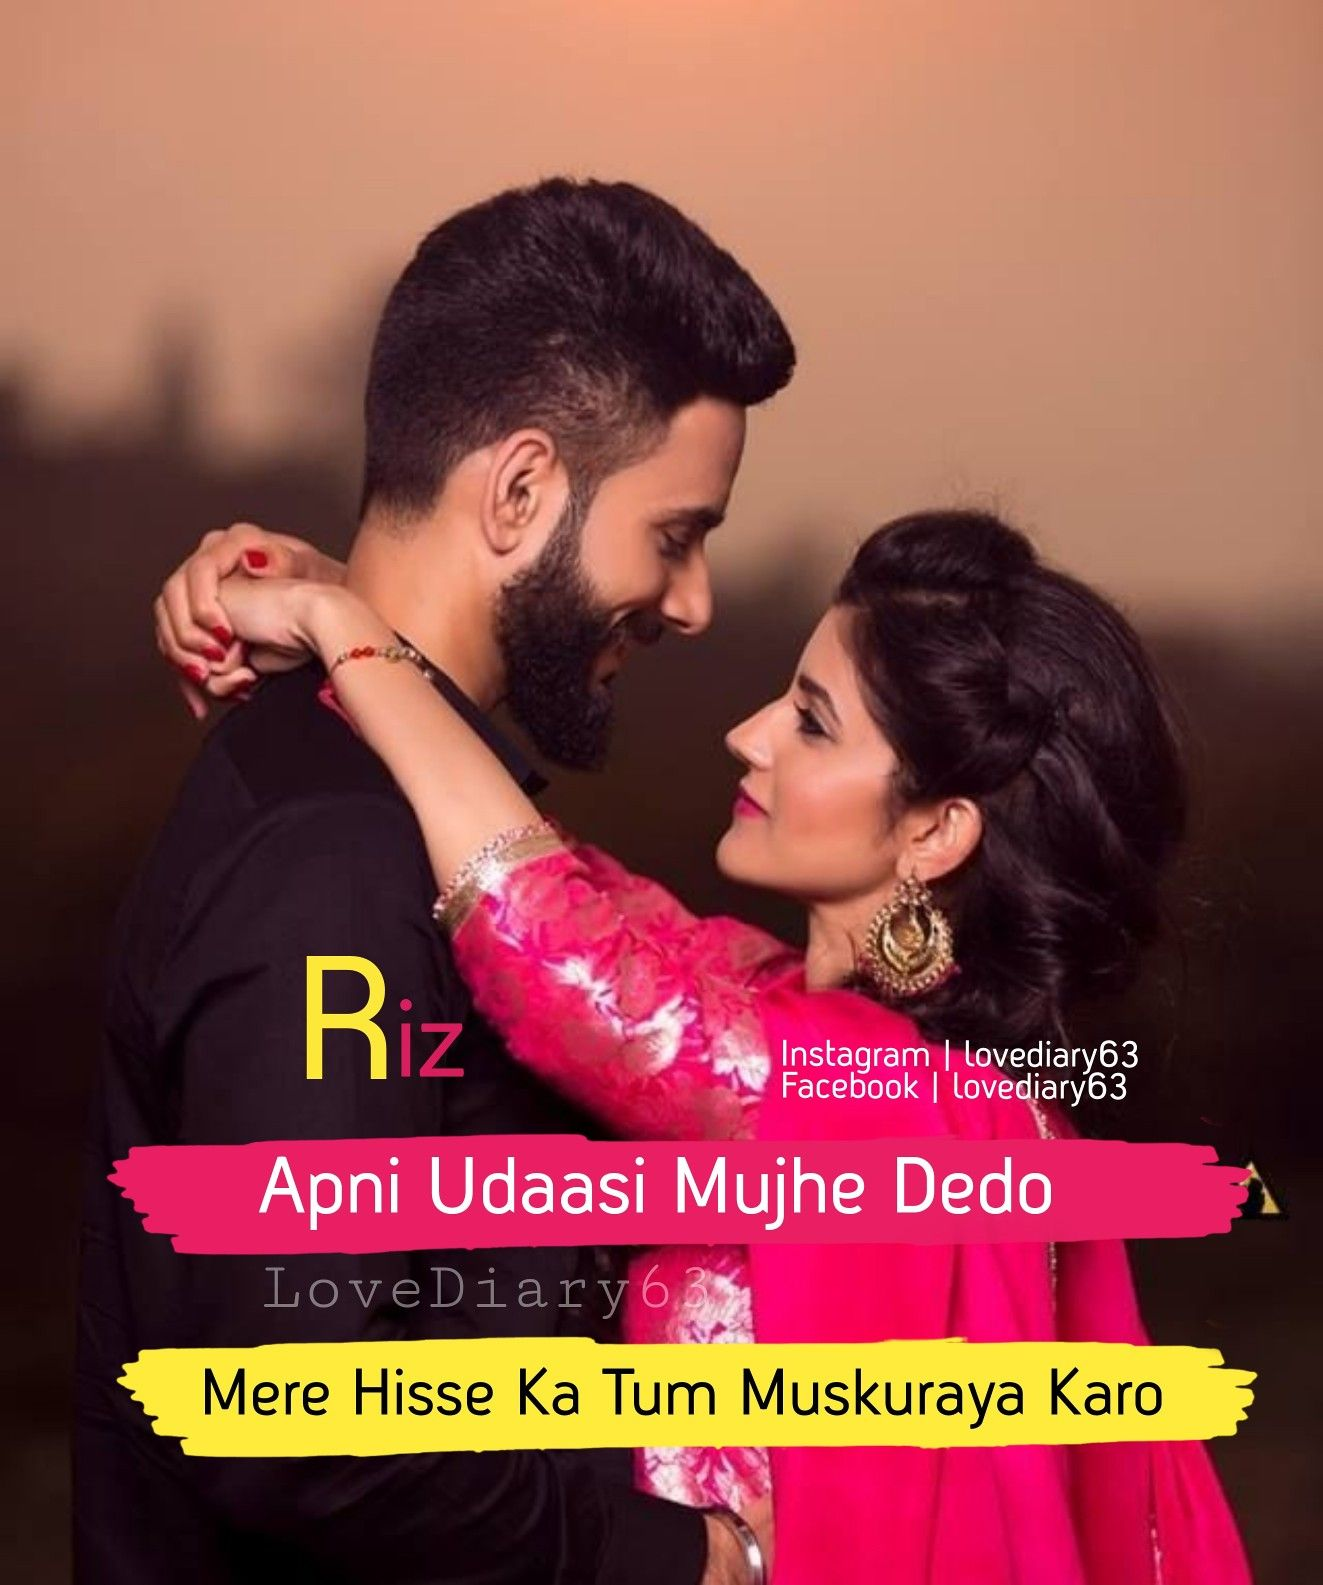 Beautiful Lines Urdu Hindi Love Quotes Pinterest Love Quotes